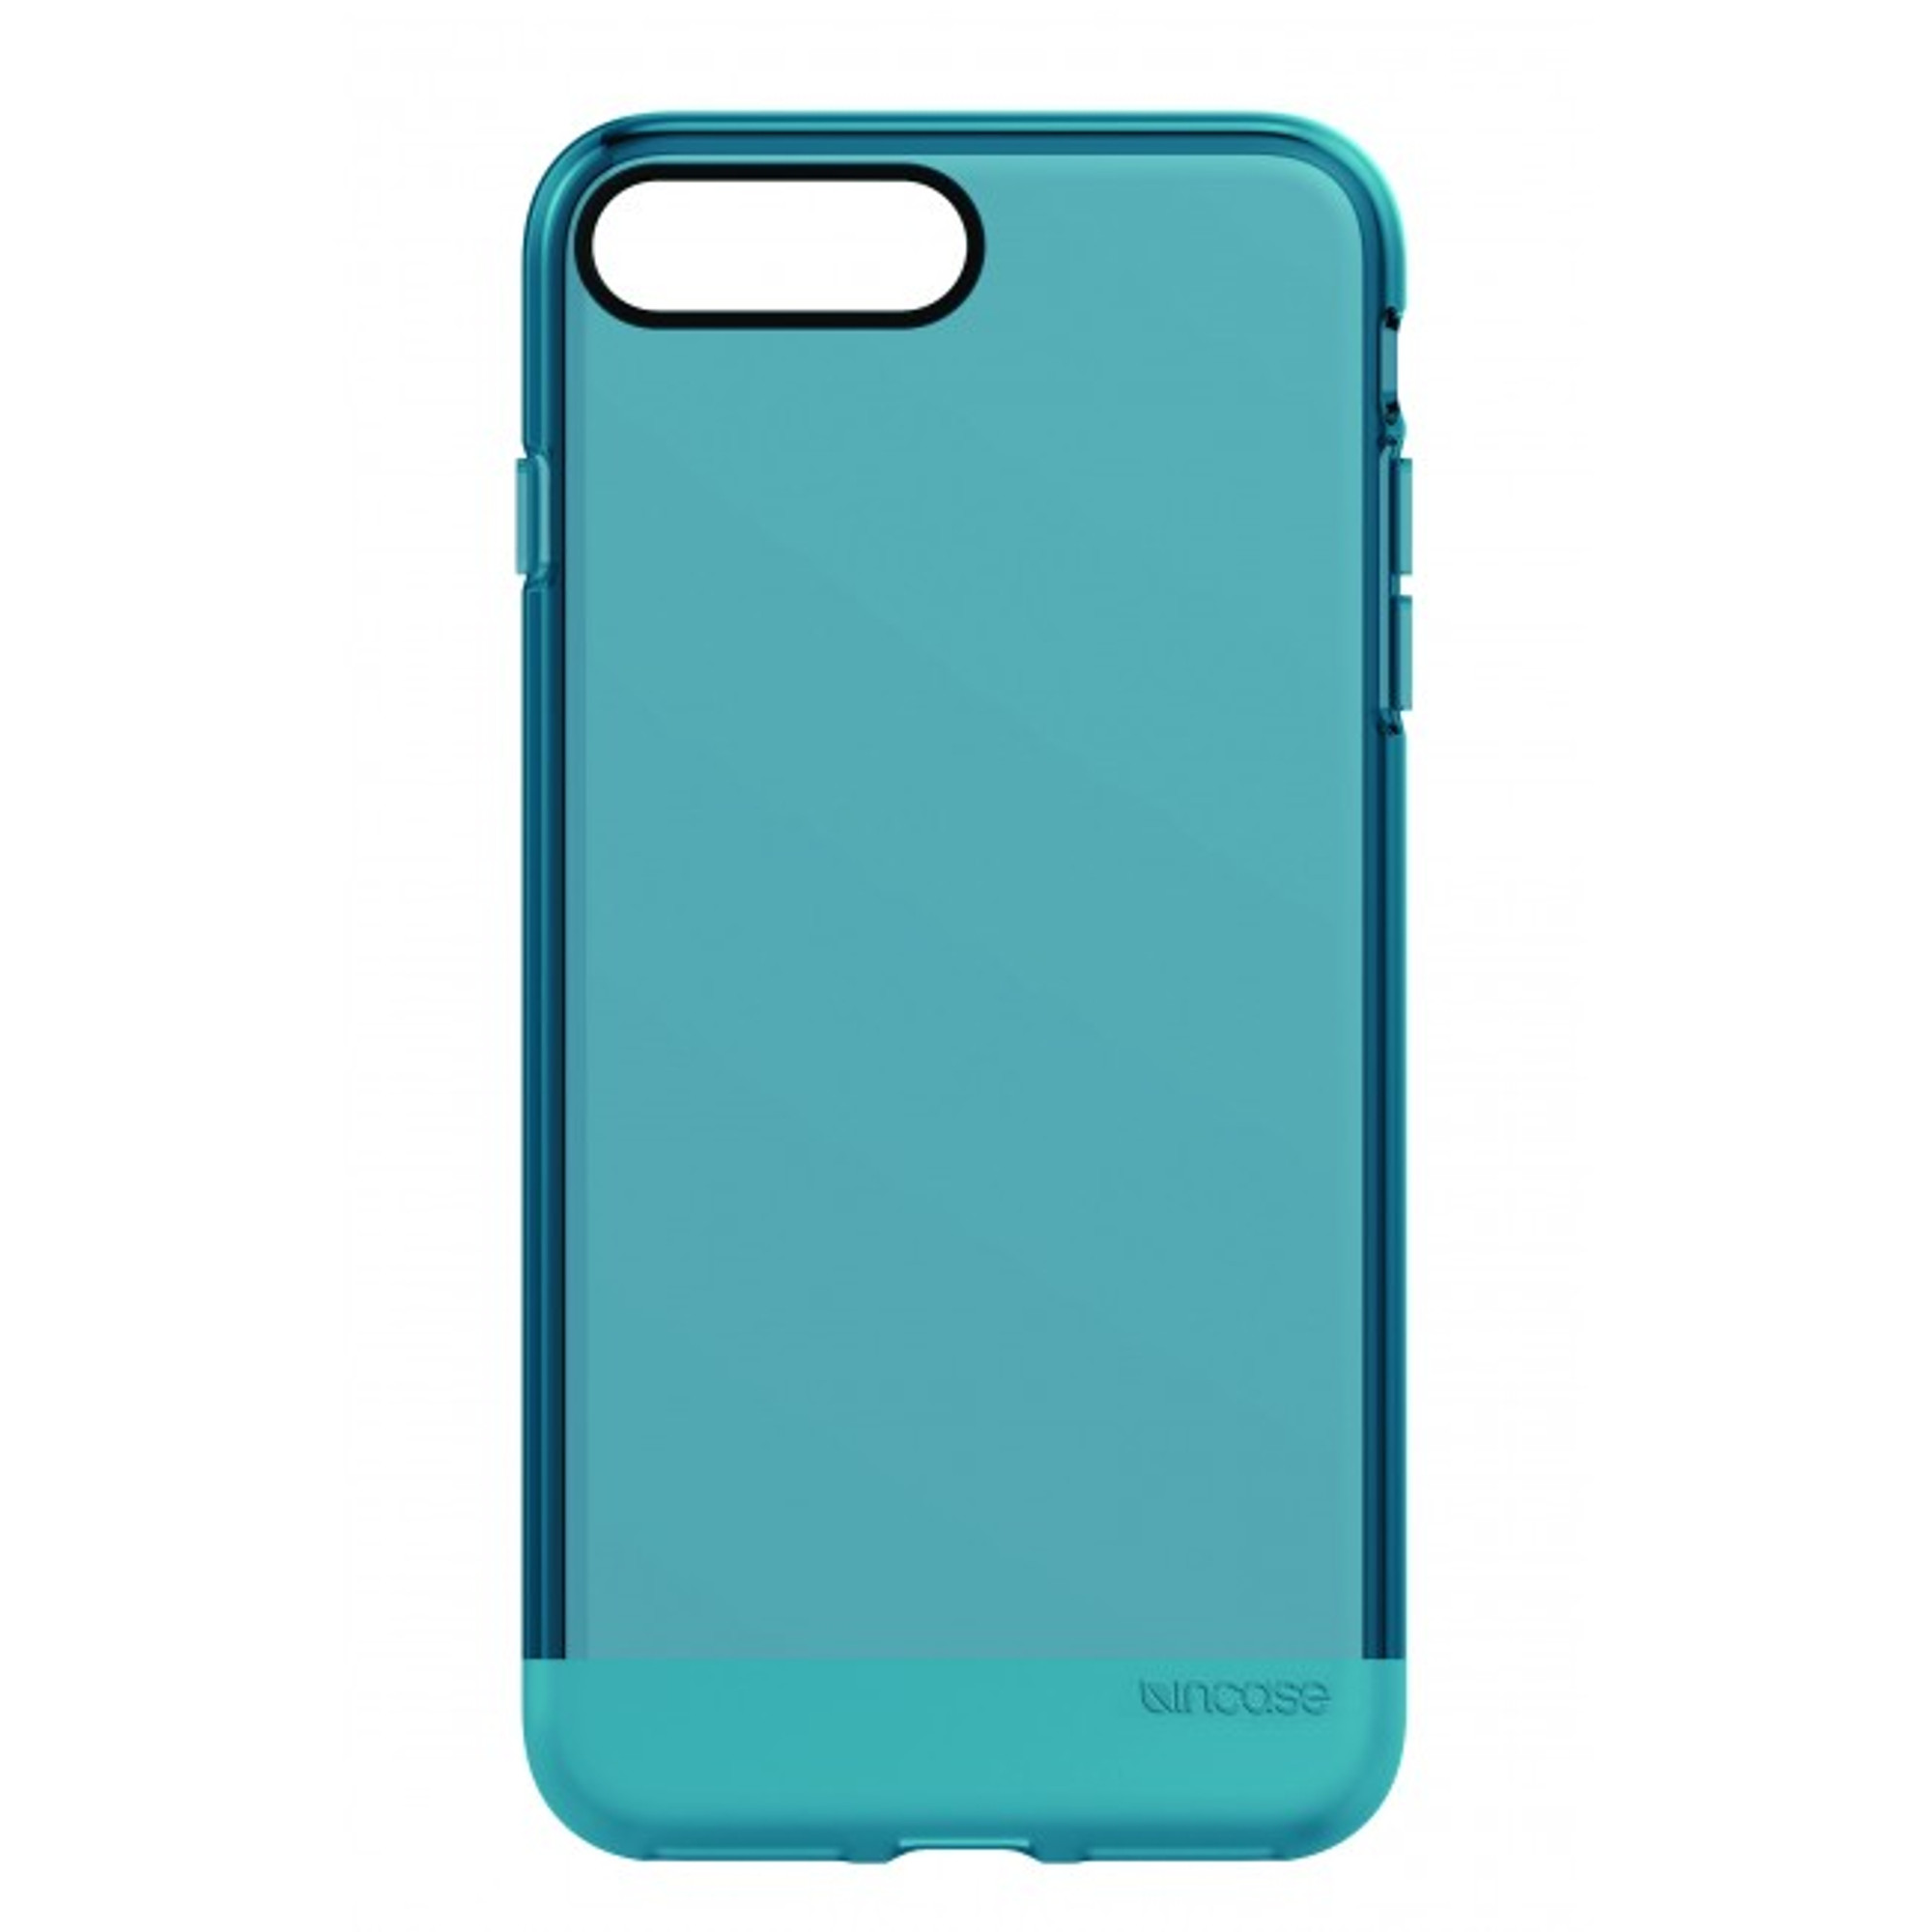 brand new 3d702 305bd Incase Protective Cover for iPhone 7 Plus - Peacock